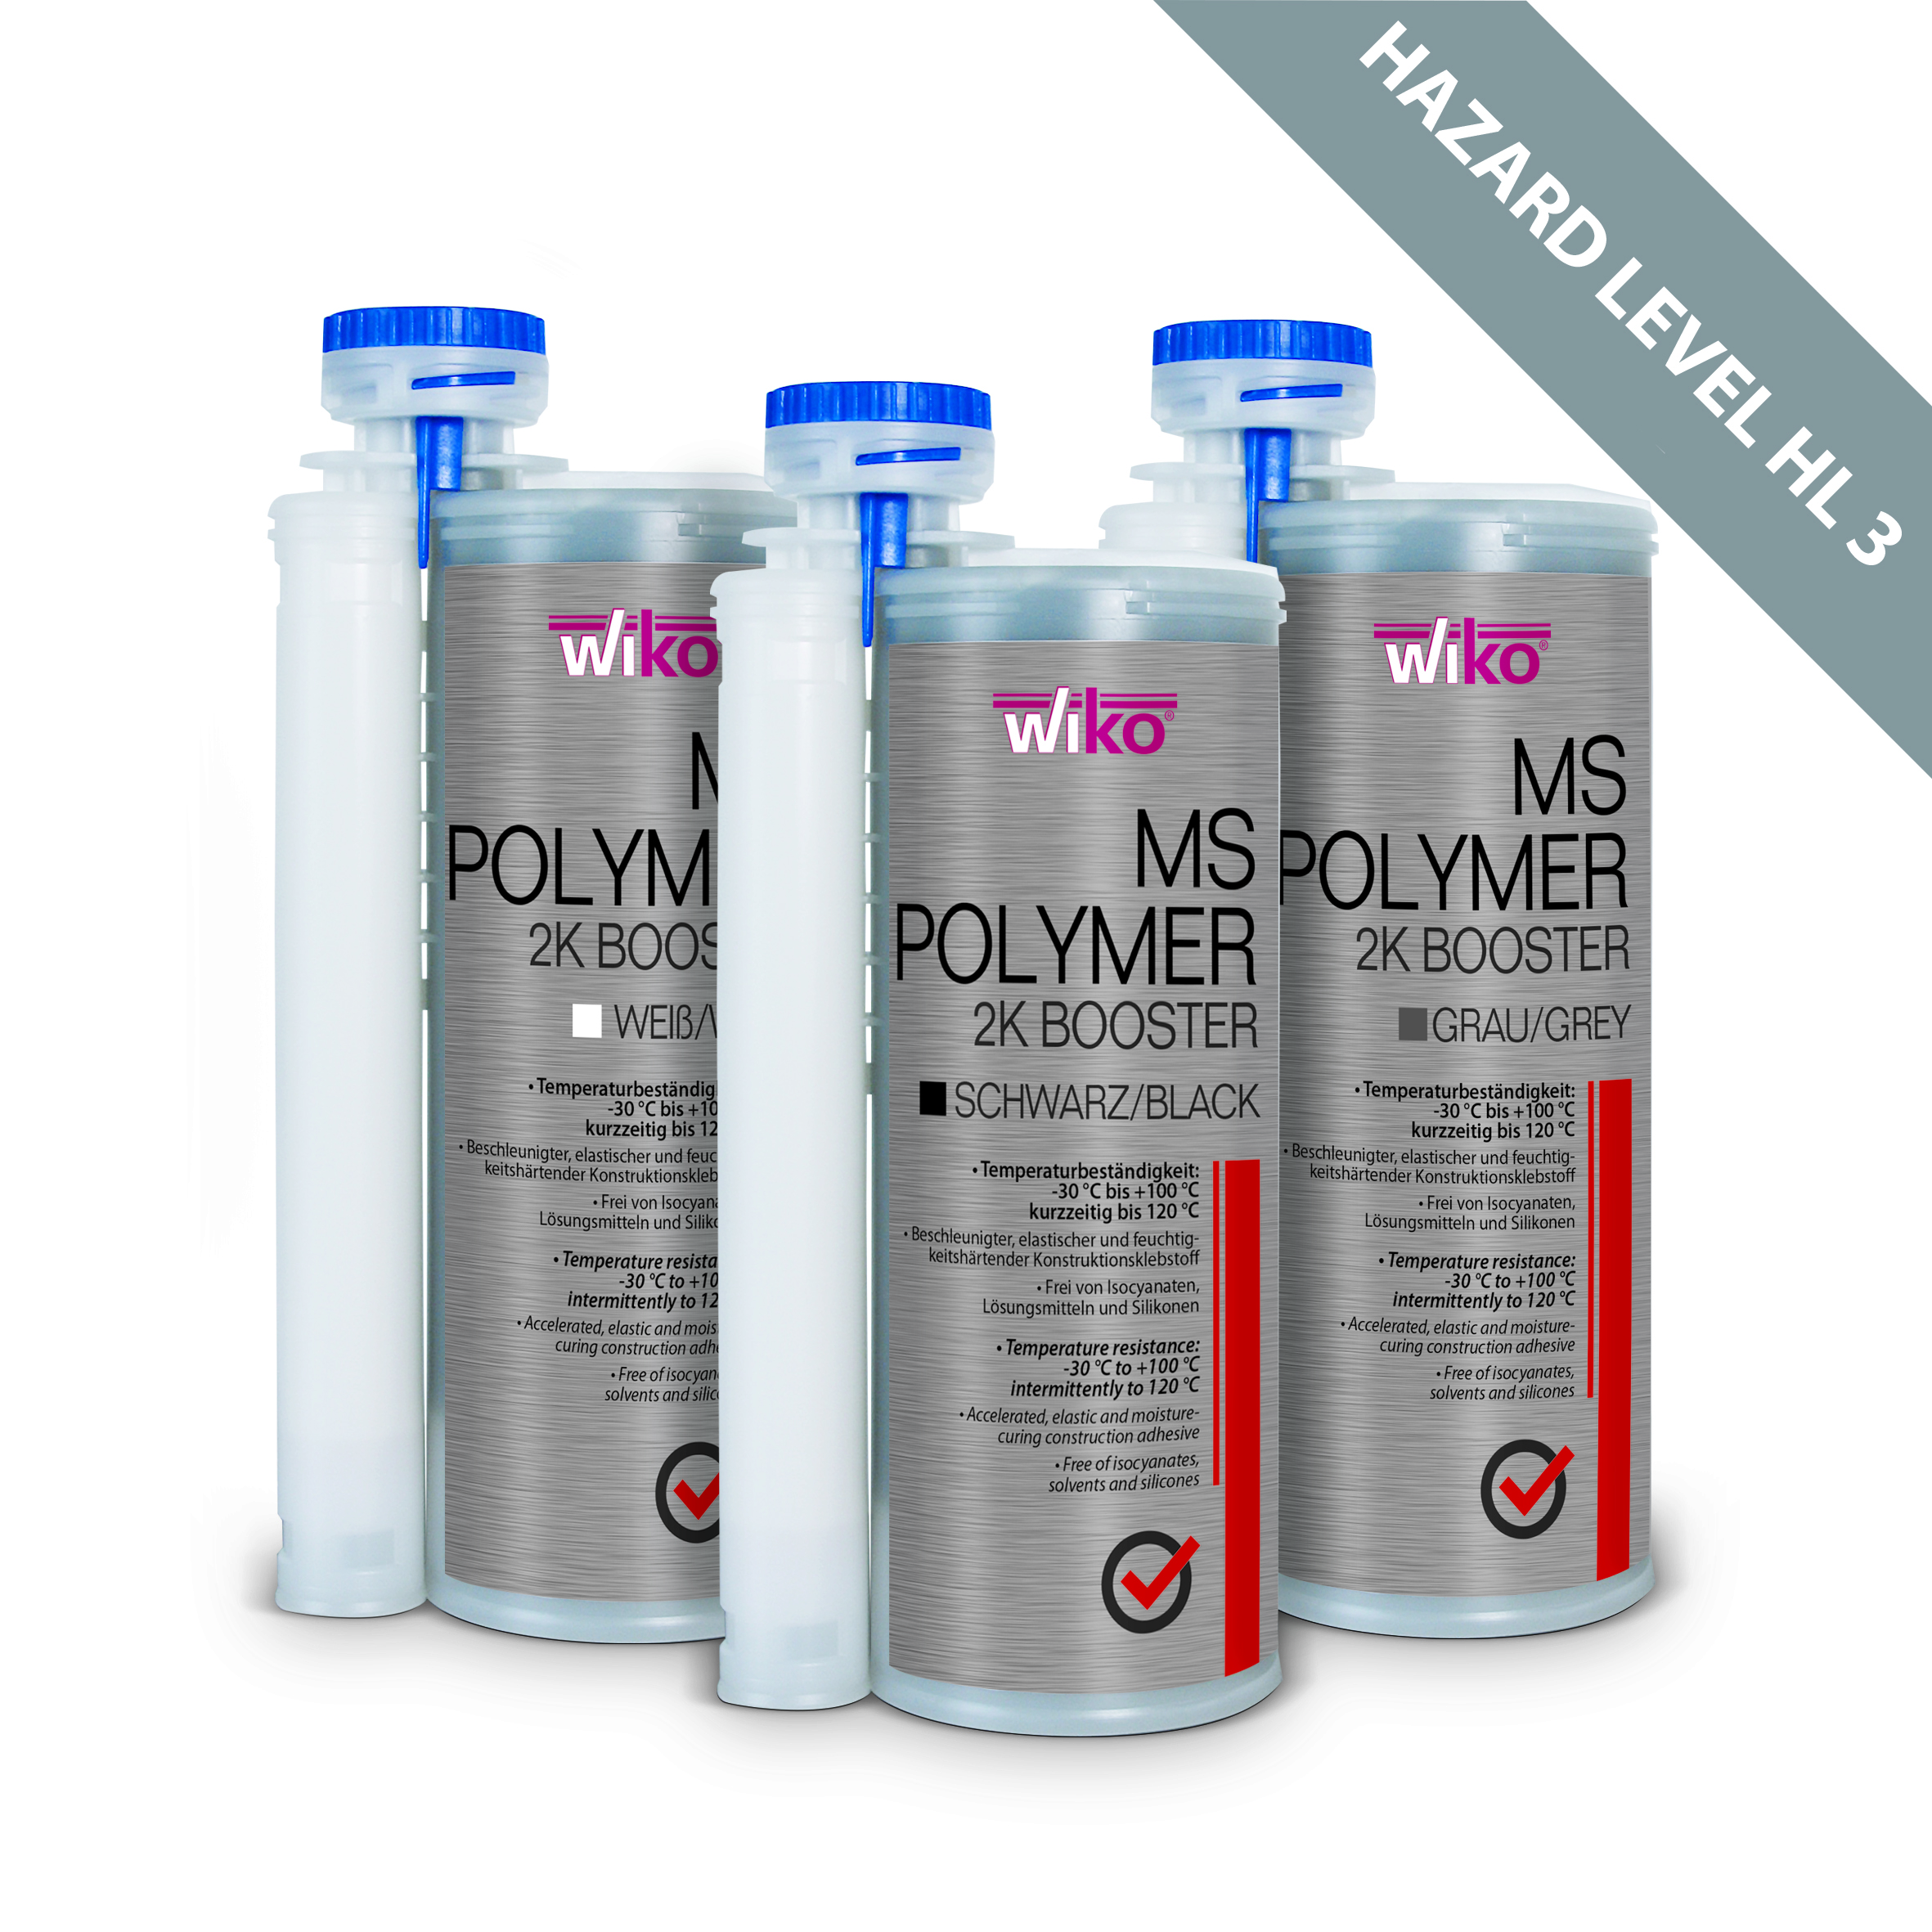 WIKO MS Polymer 2K Booster: Certified adhesive suitable for indoor and outdoor use, Hazard Level 3